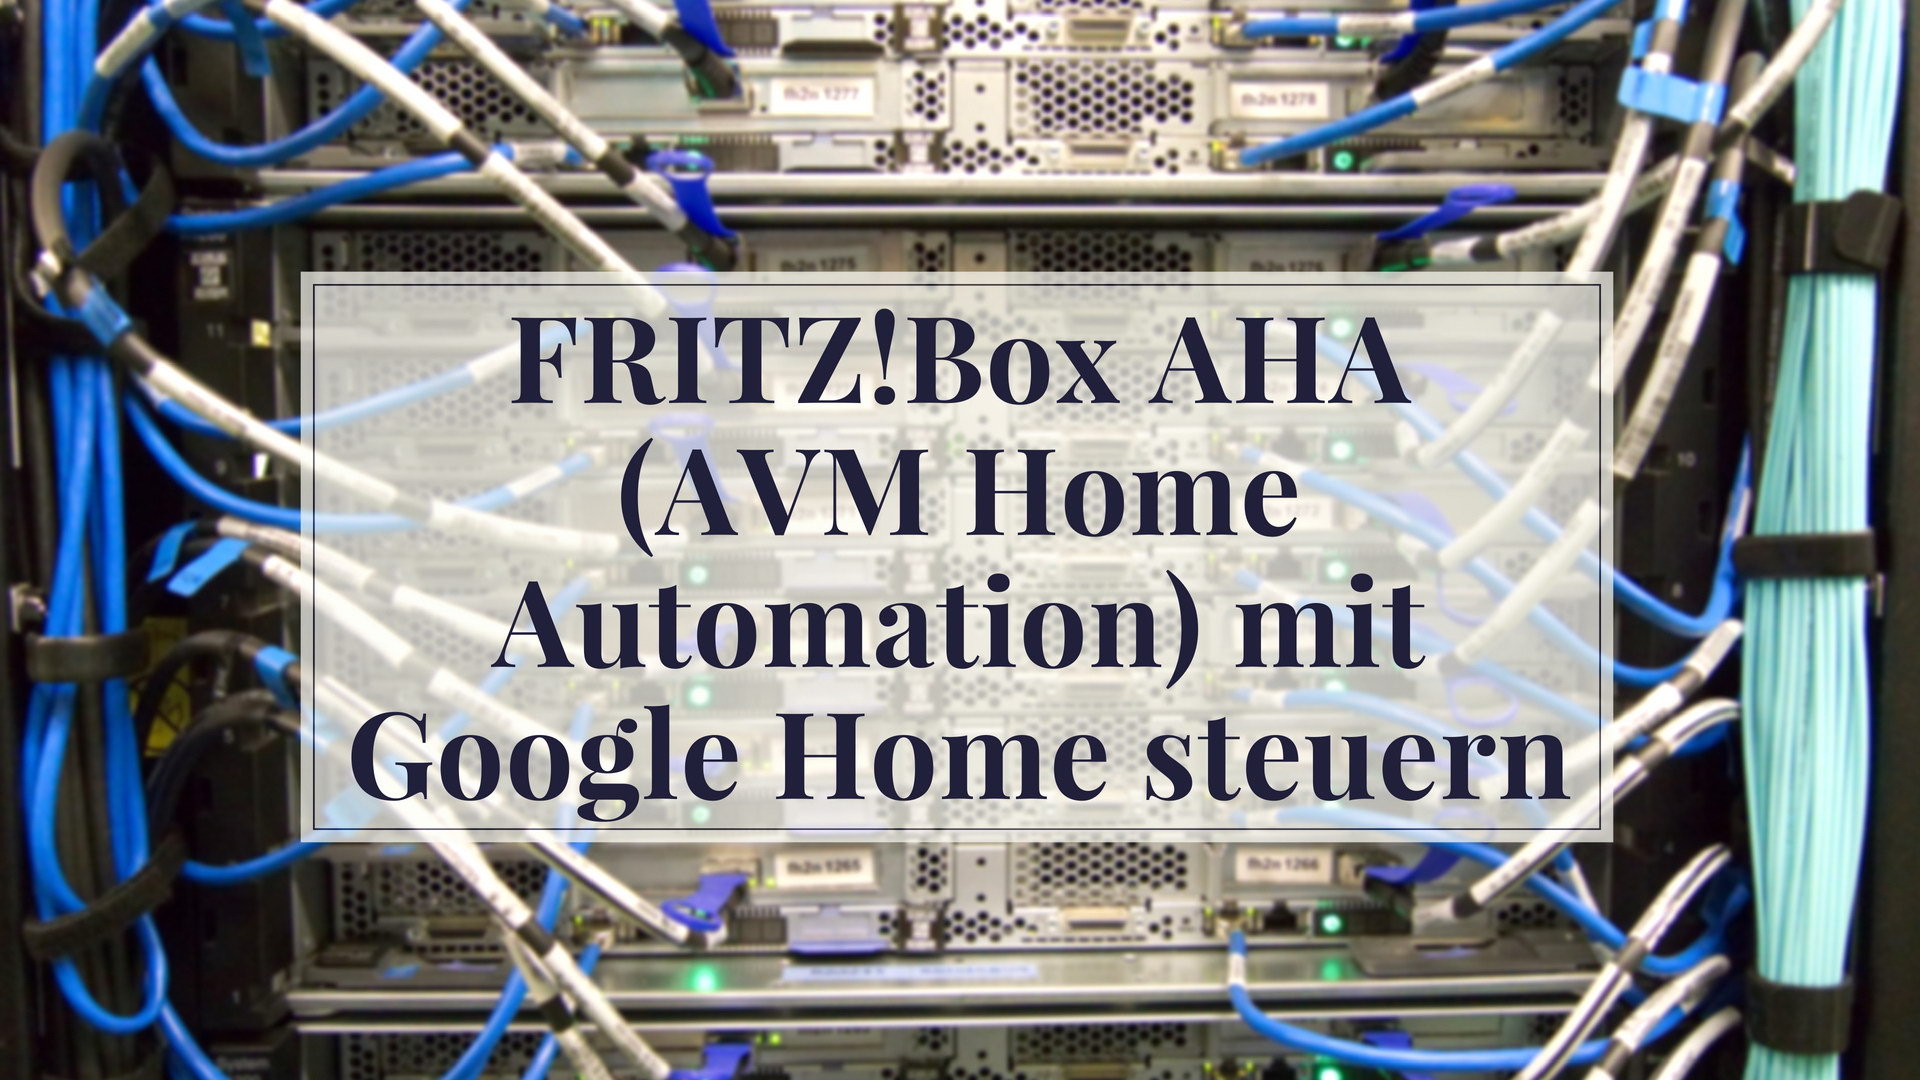 FRITZBox AHA AVM Home Automation mit Google Home steuern